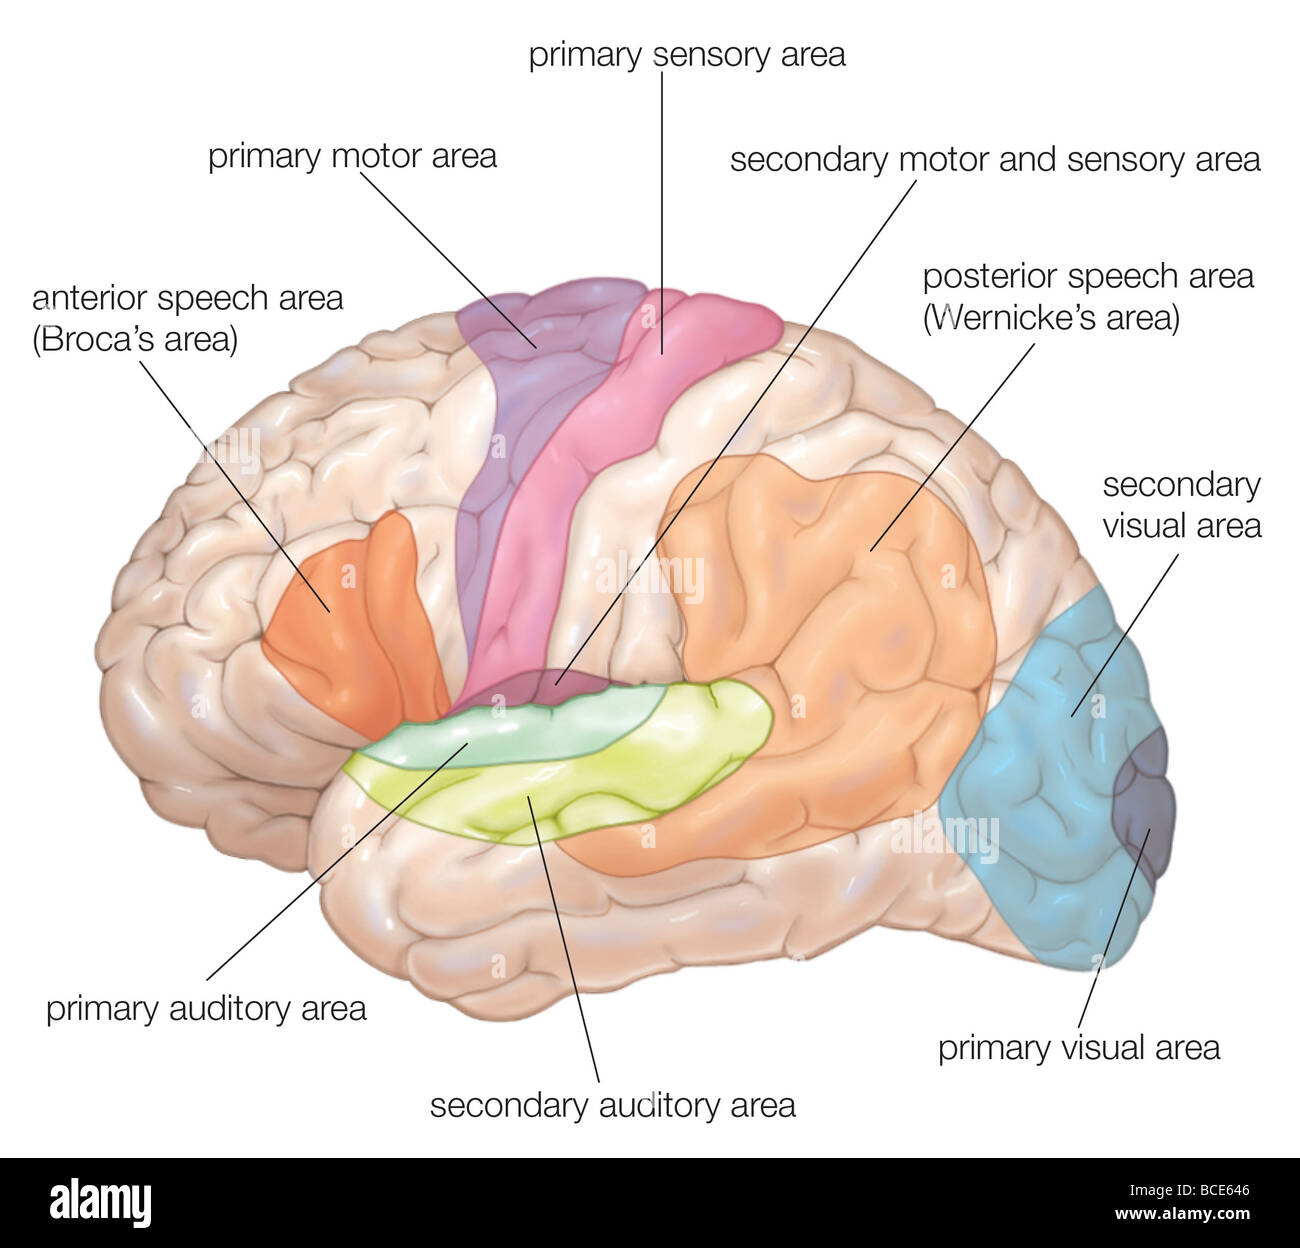 hight resolution of diagram of the lateral view of the human brain showing the functional areas motor sensory auditory visual and speech